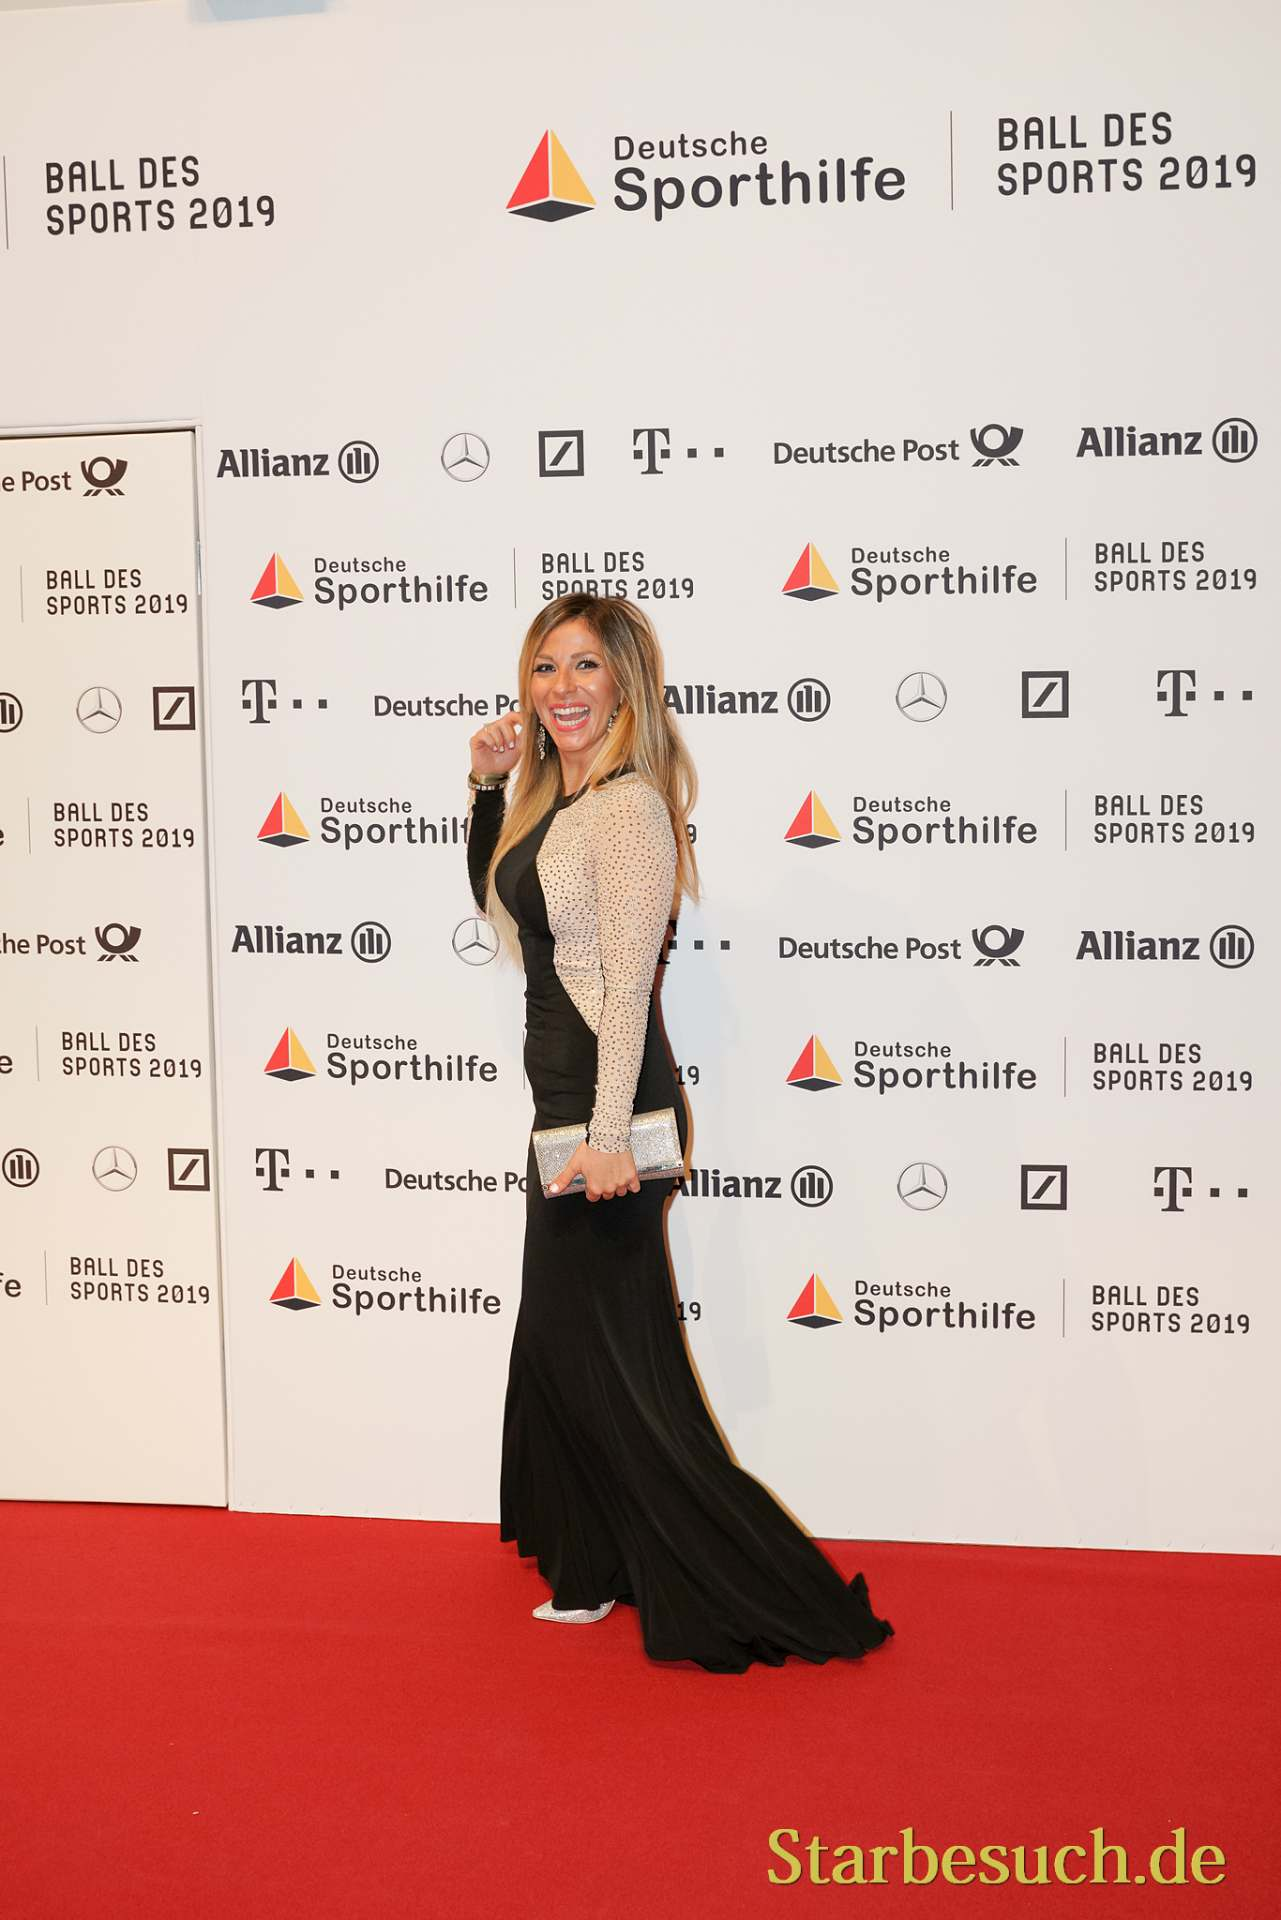 WIESBADEN, Germany - February 2nd, 2019: Gülcan Kamps (*1982, German-Turkish TV-personality and singer) at Ball des Sports 2019